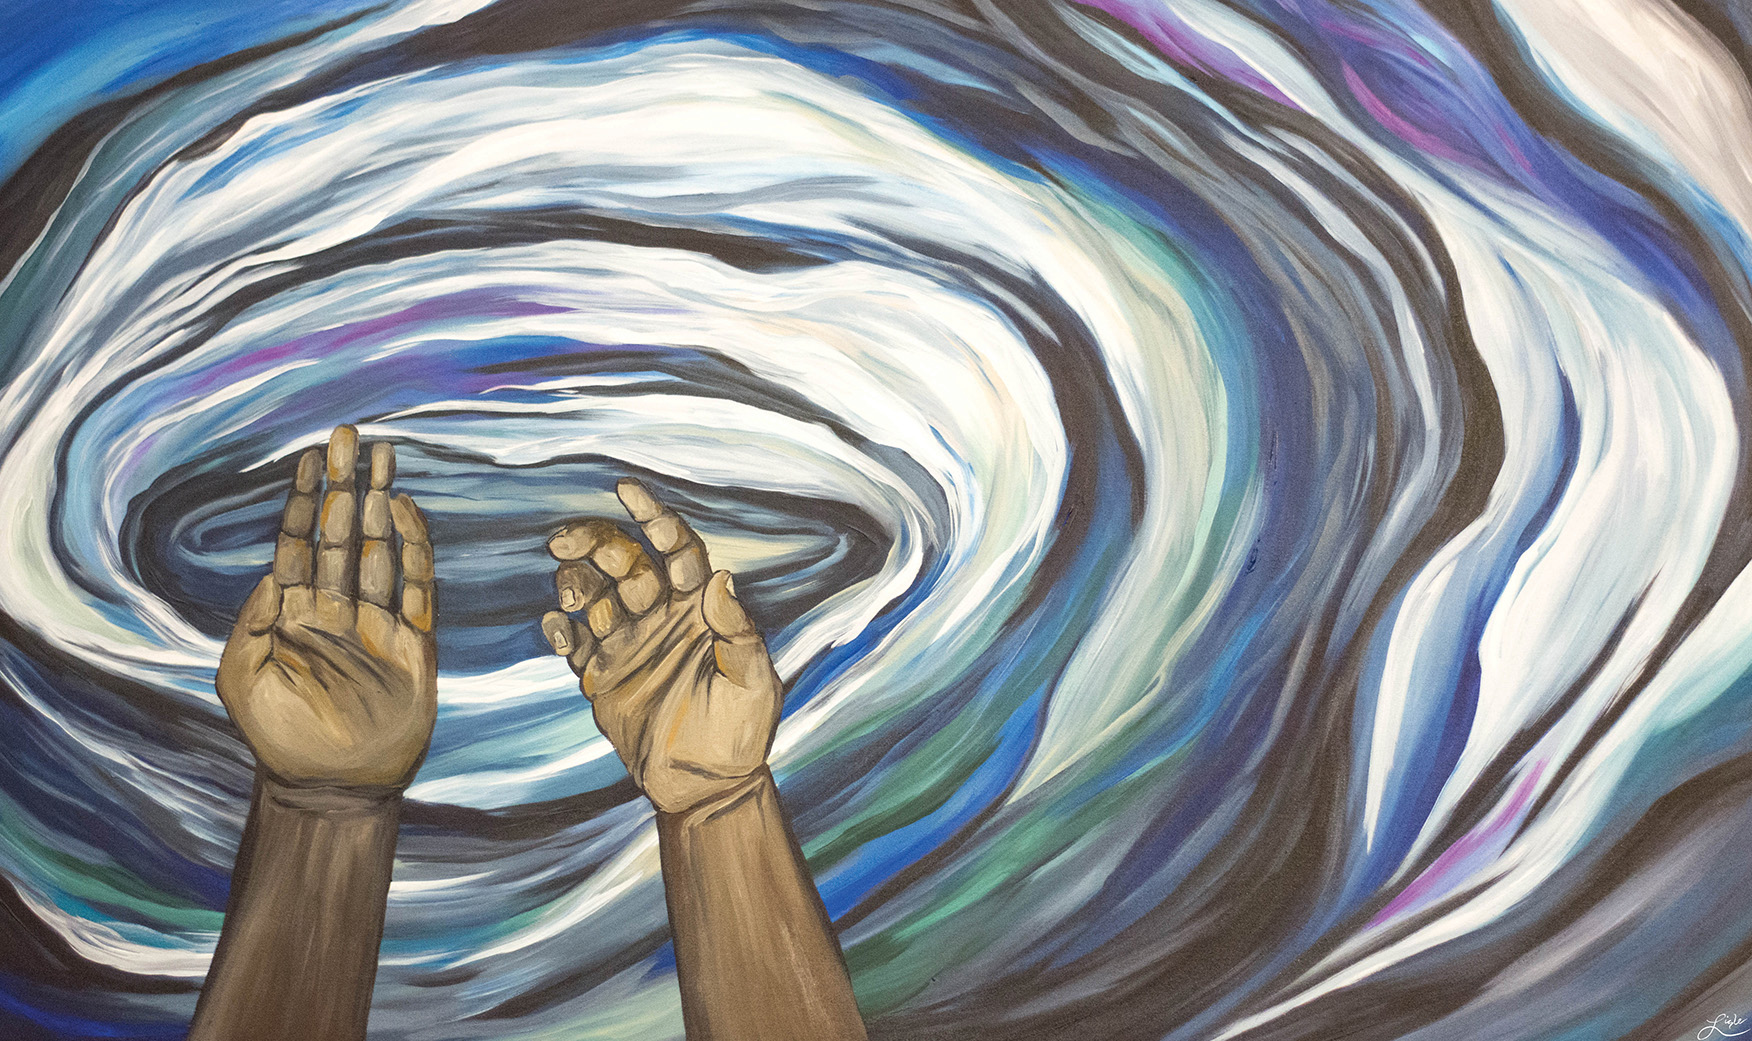 The Ripple Effect: How One Drop Changes Everything